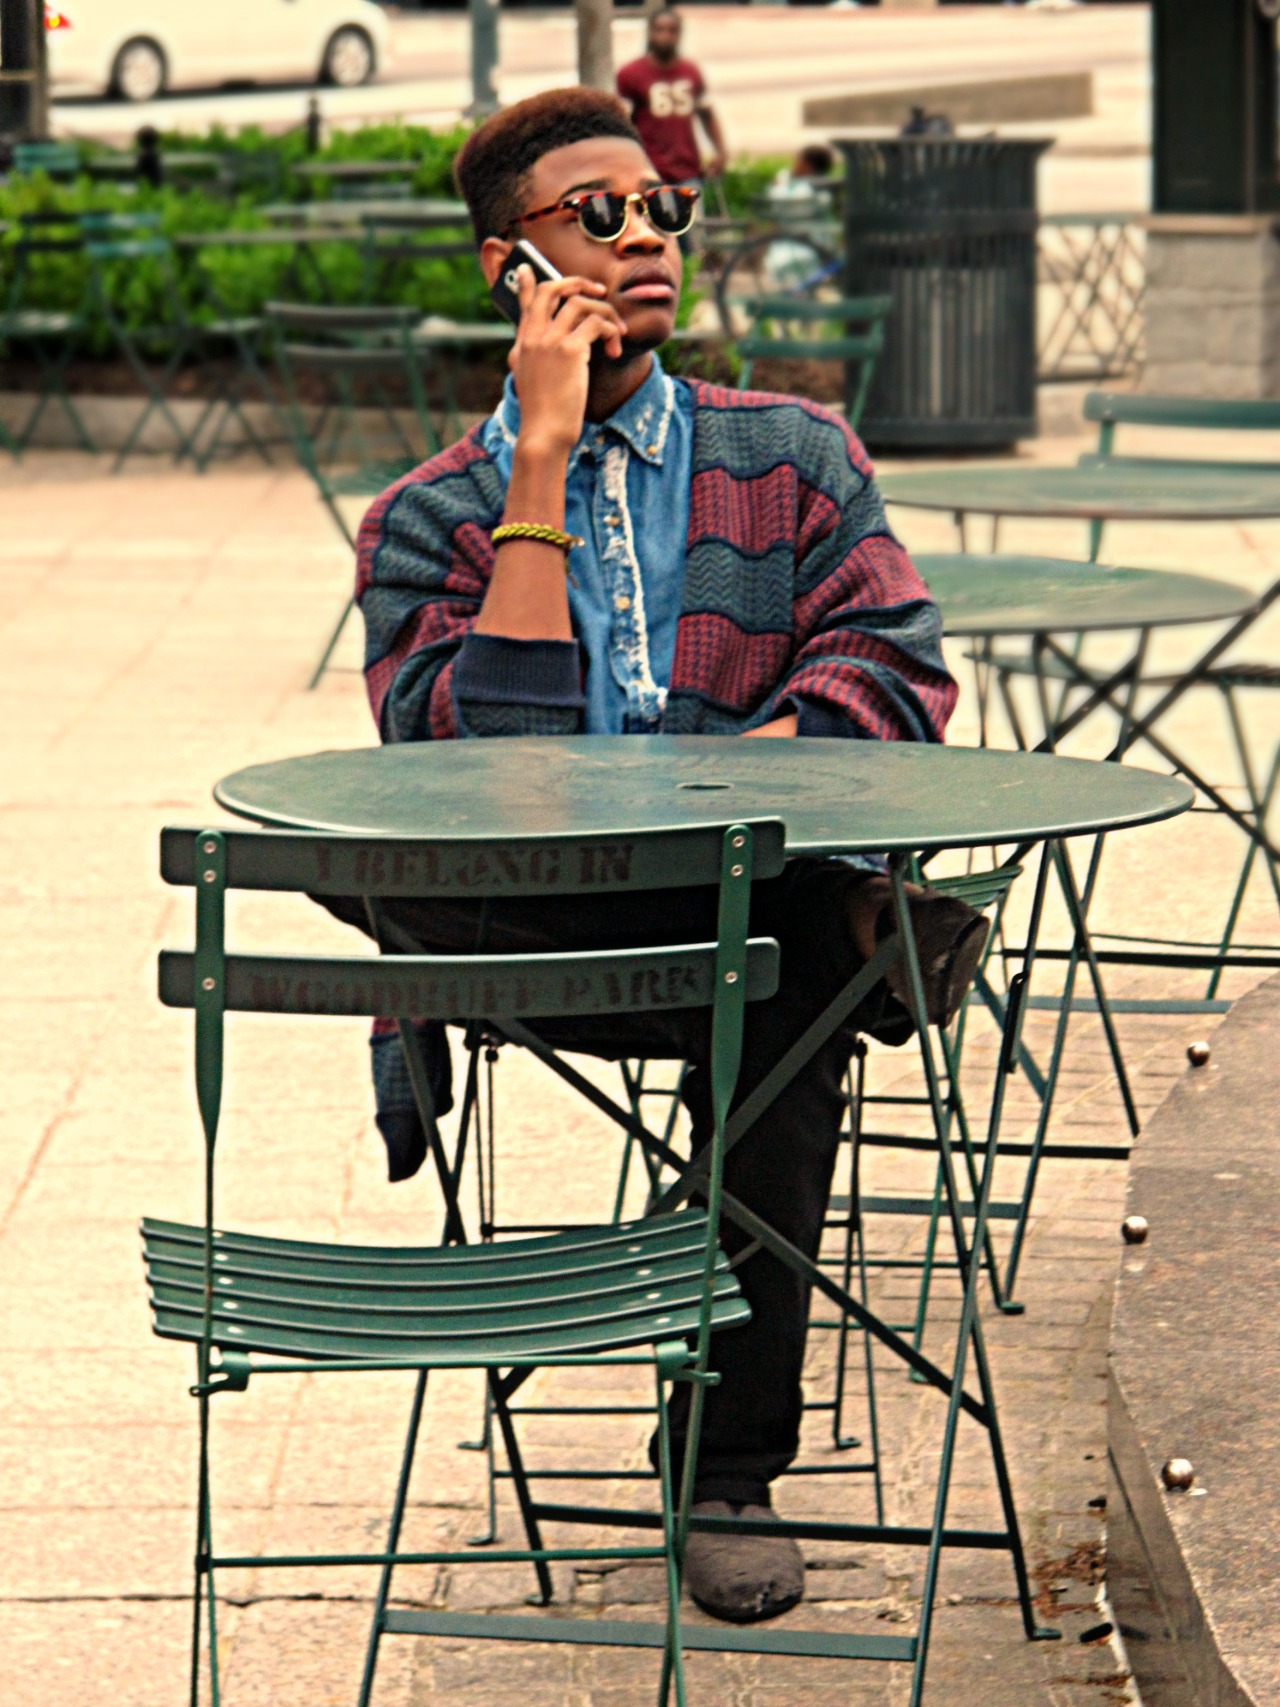 blackfashion:  Shaquille, 18, ATL Glasses: Ray Ban, Sweater: Thrifted, Distressed Denim shirt: by Me, Pants: Levis, Shoes: Toms LiftedElegance.tumblr.com